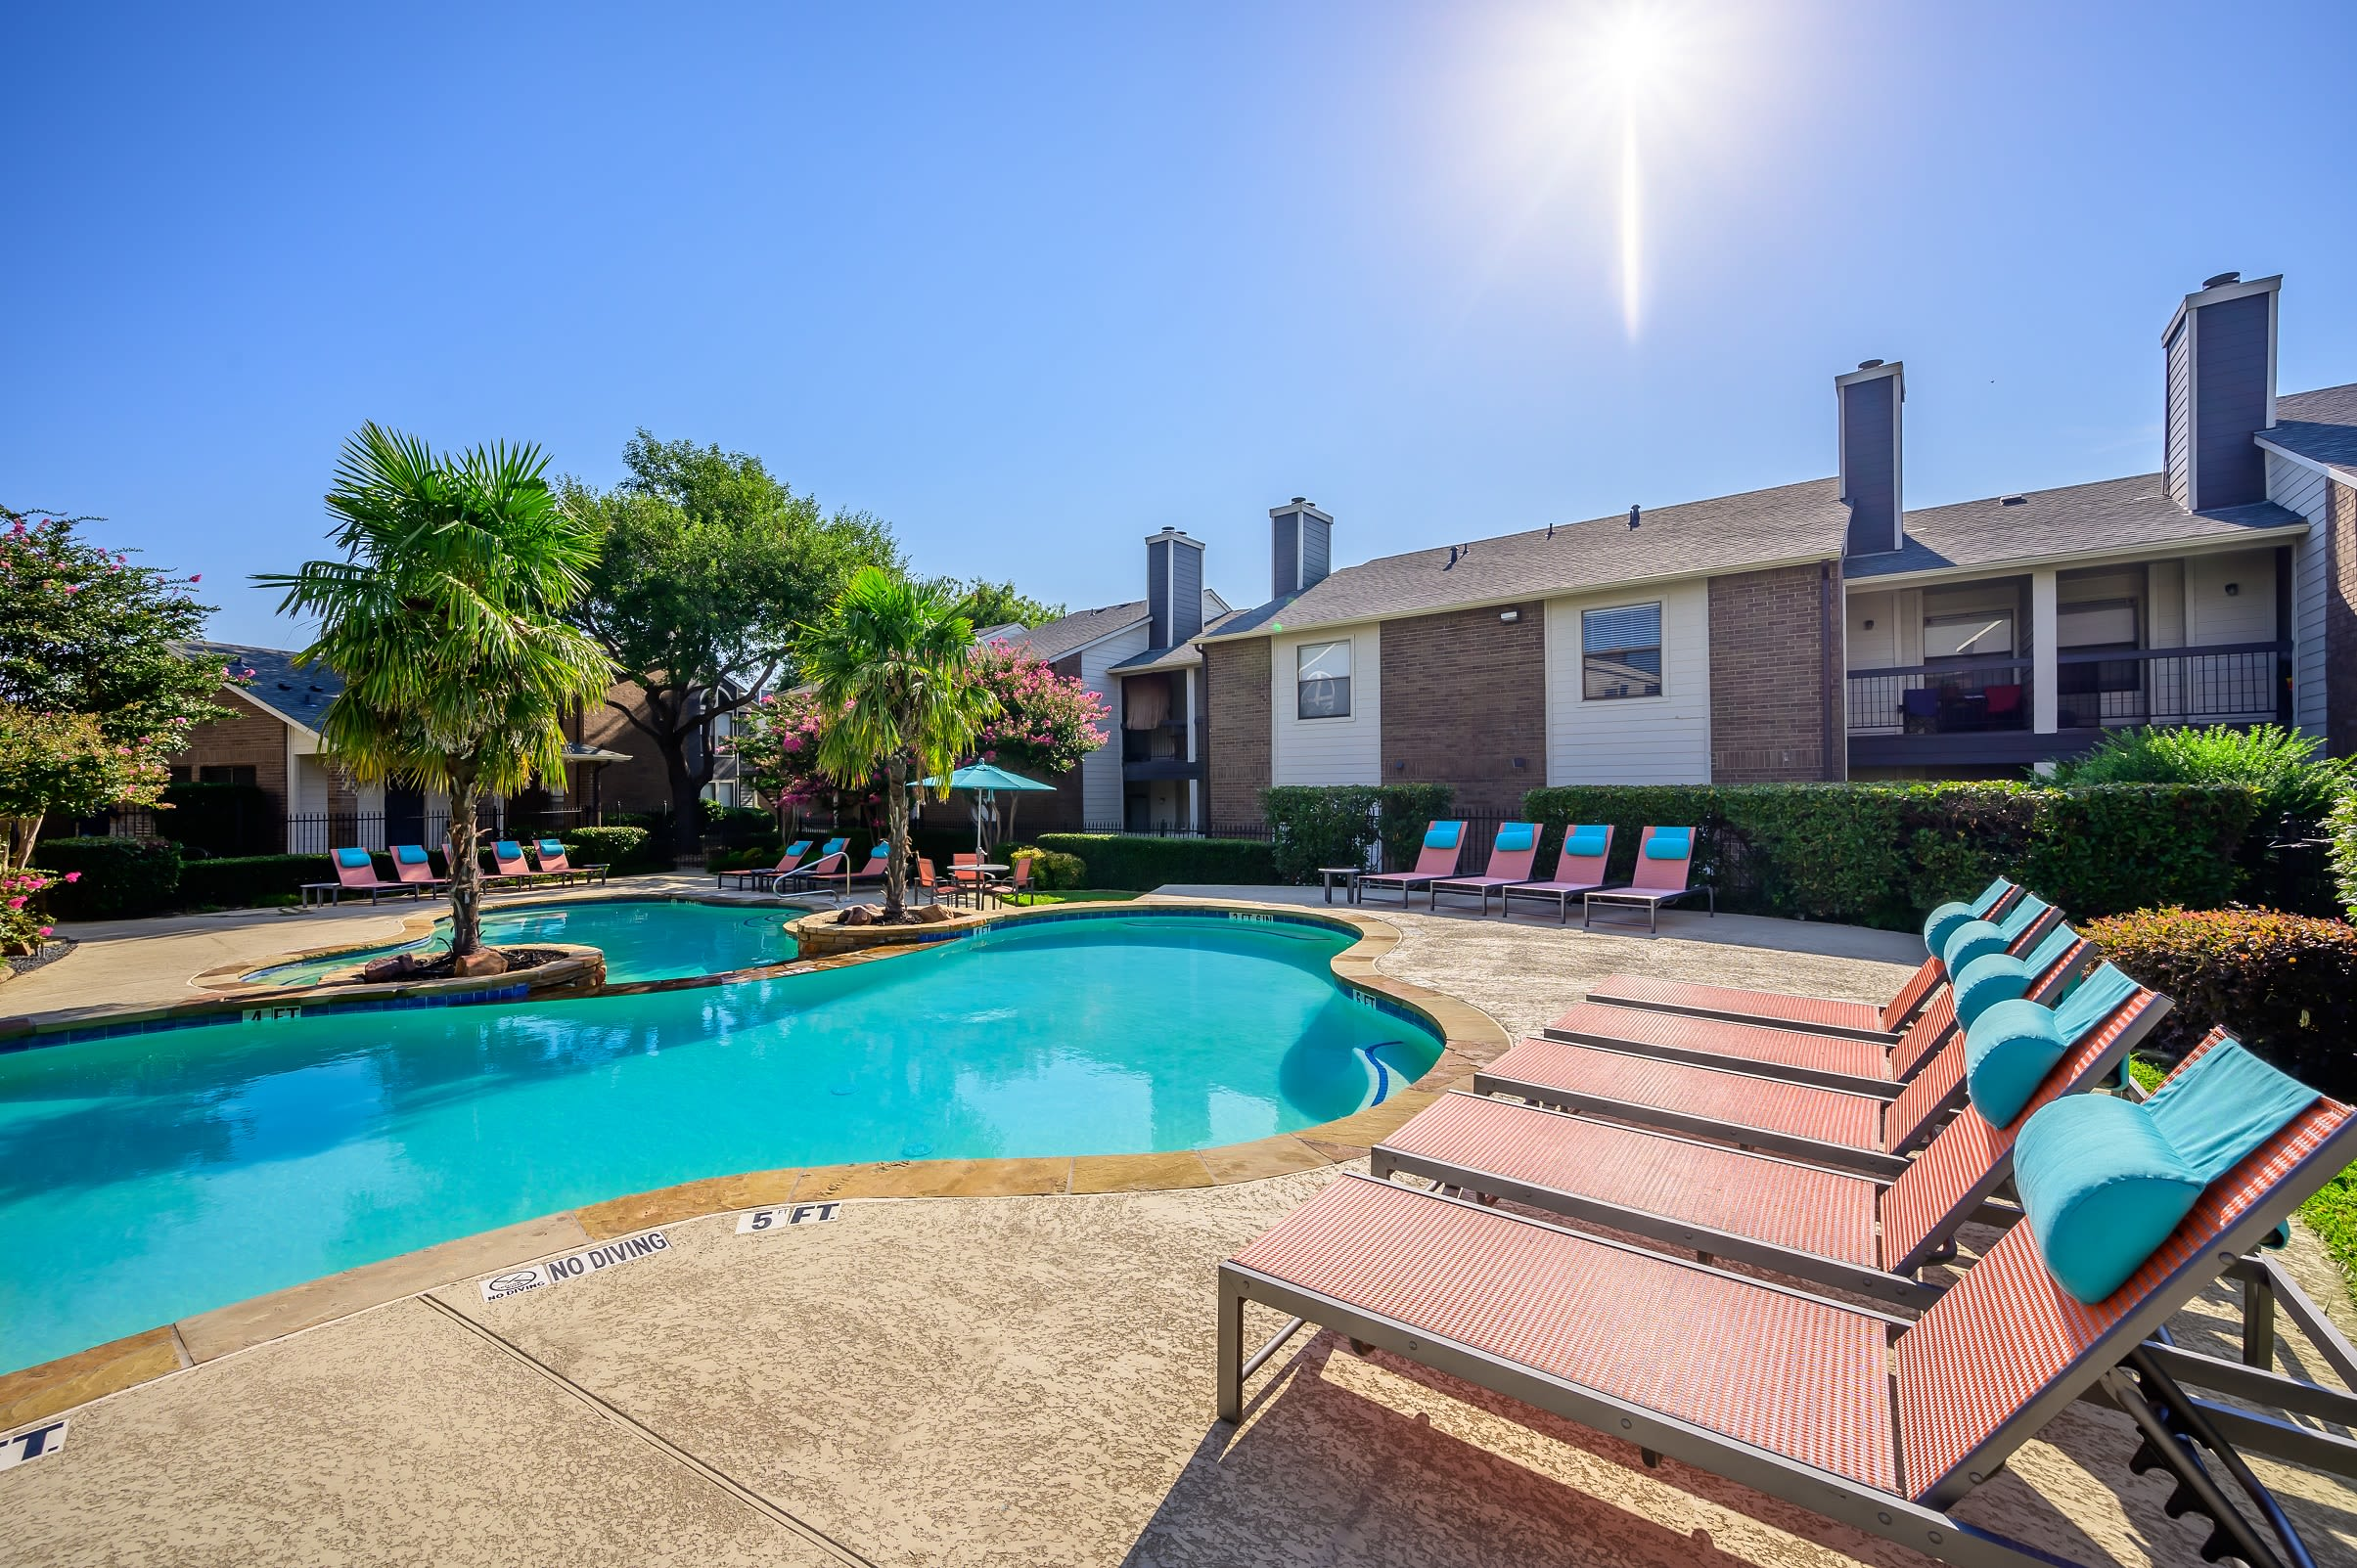 Apartments at Ridgeview Place in Irving, Texas